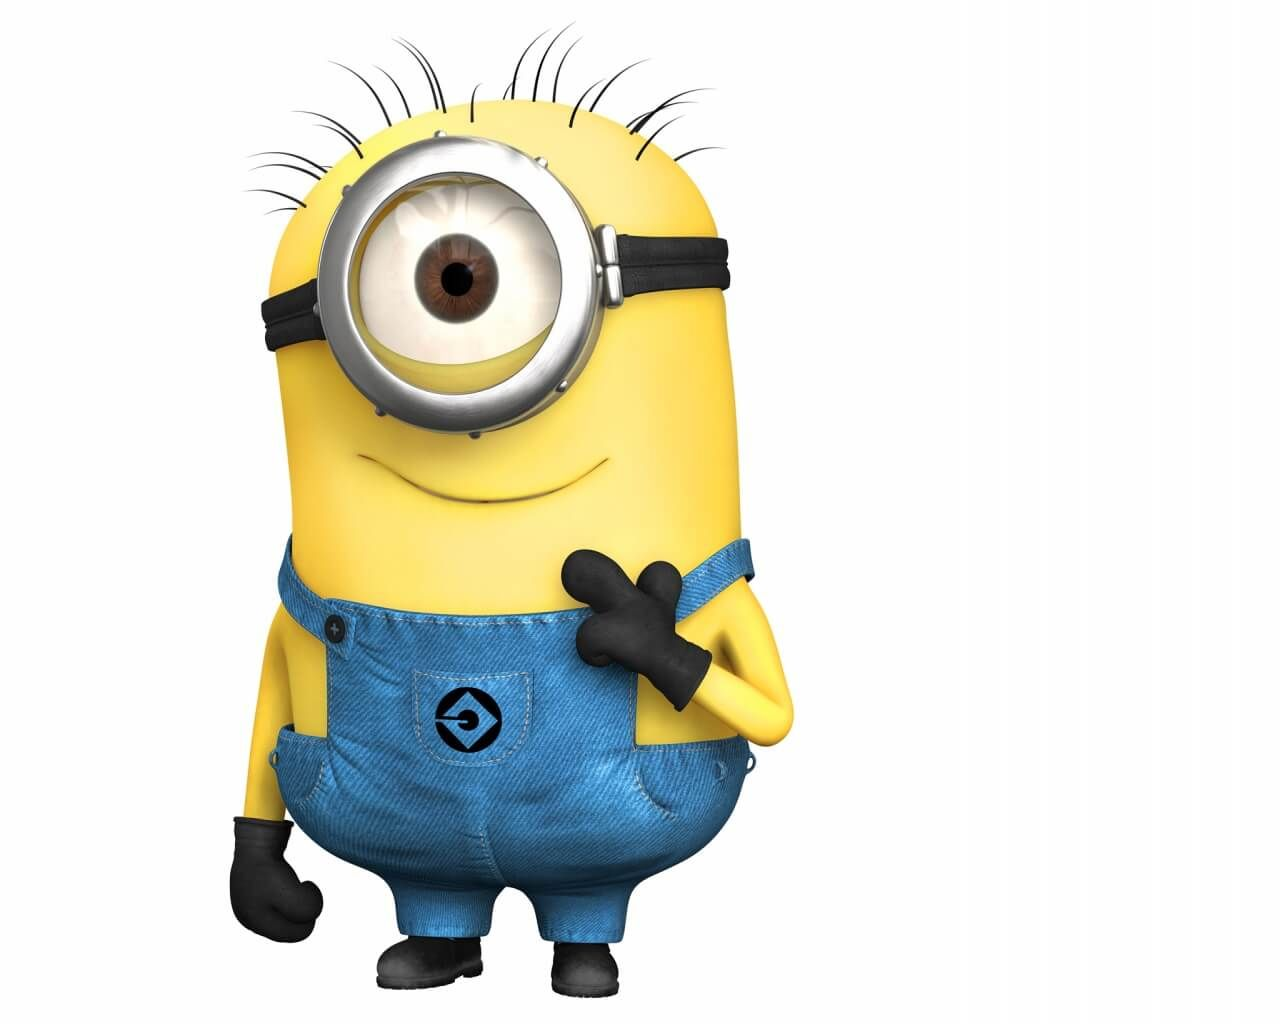 despicable me minion wallpapers wallpaper | hd wallpapers